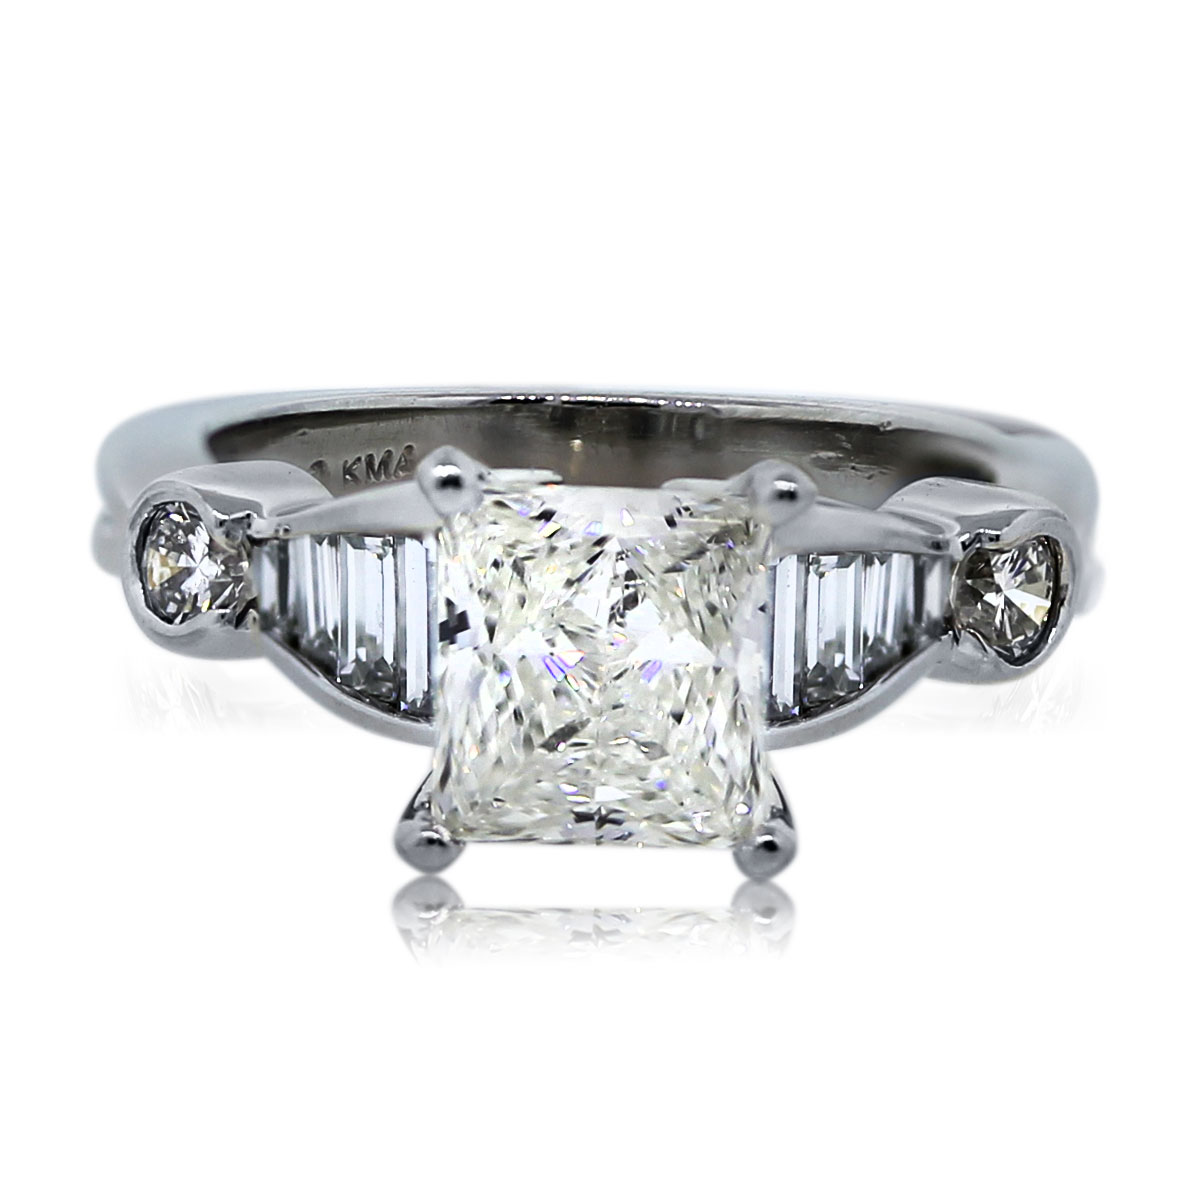 You are Viewing this Stunning 1.56ct Radiant Cut Engagement Ring!